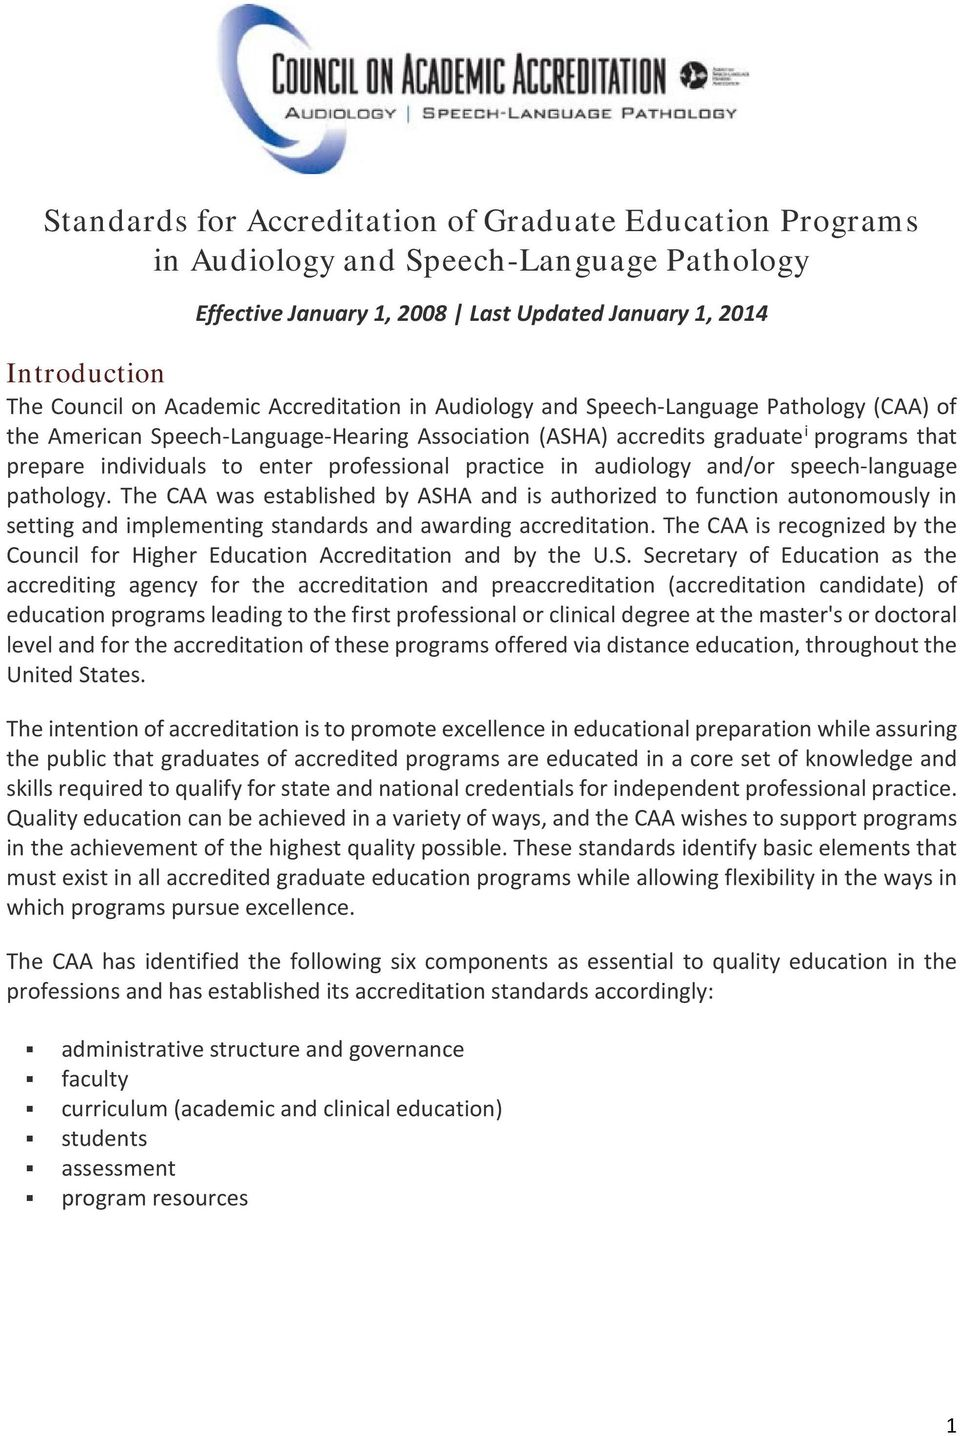 practice in audiology and/or speech-language pathology. The CAA was established by ASHA and is authorized to function autonomously in setting and implementing standards and awarding accreditation.